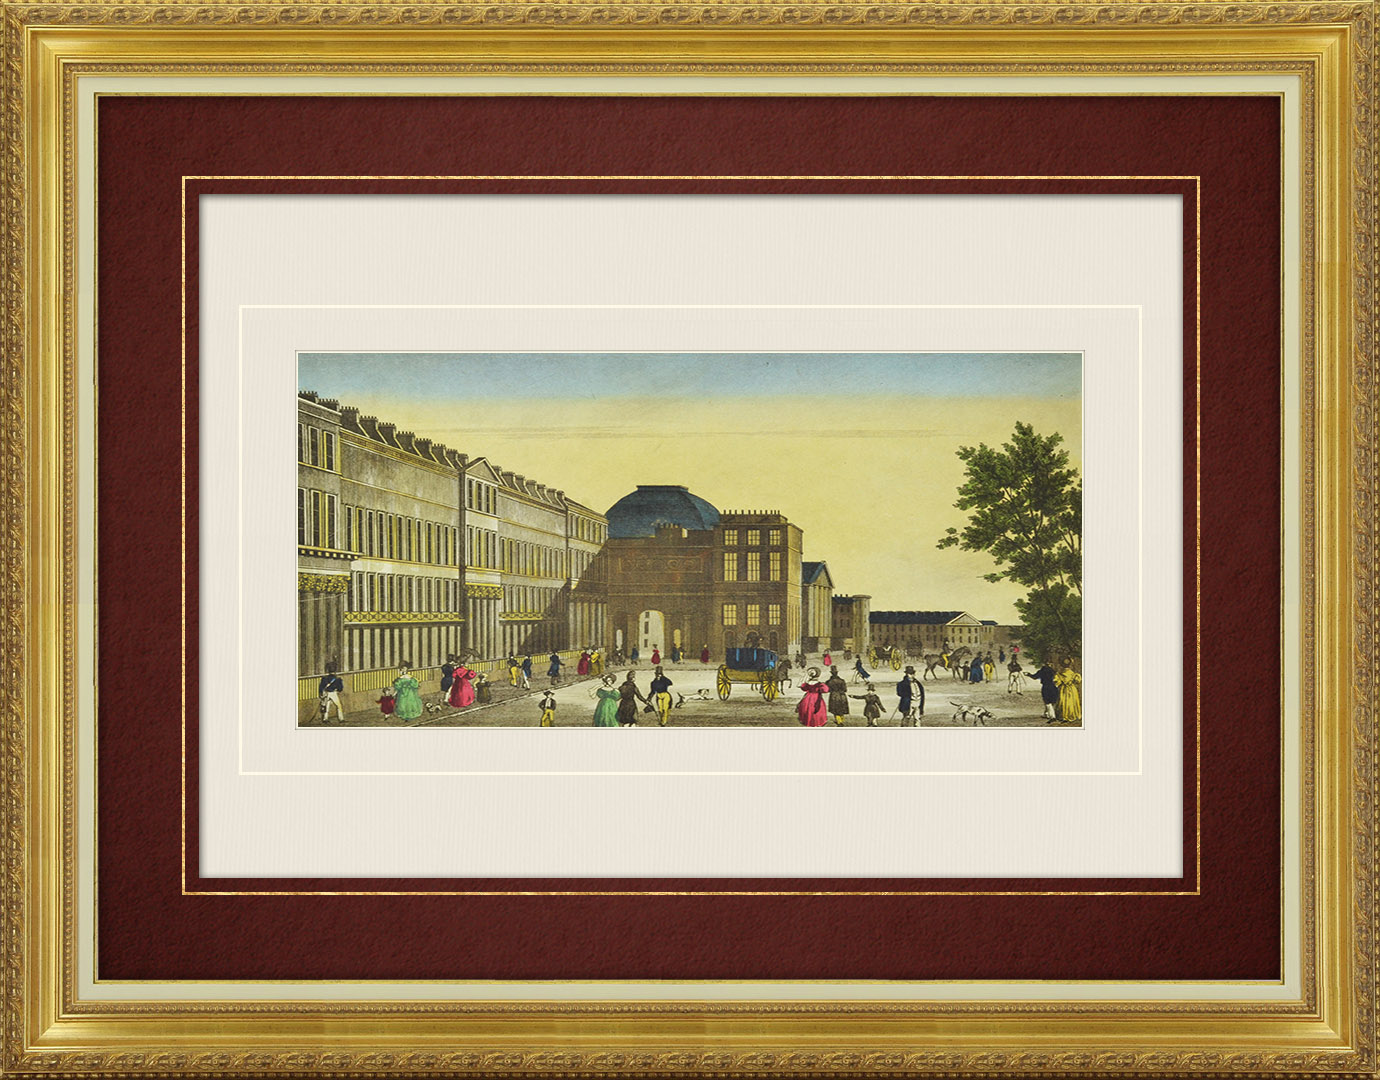 19th Century optical view in original watercolors of Chester Terrace in Regent's Park at London (England)